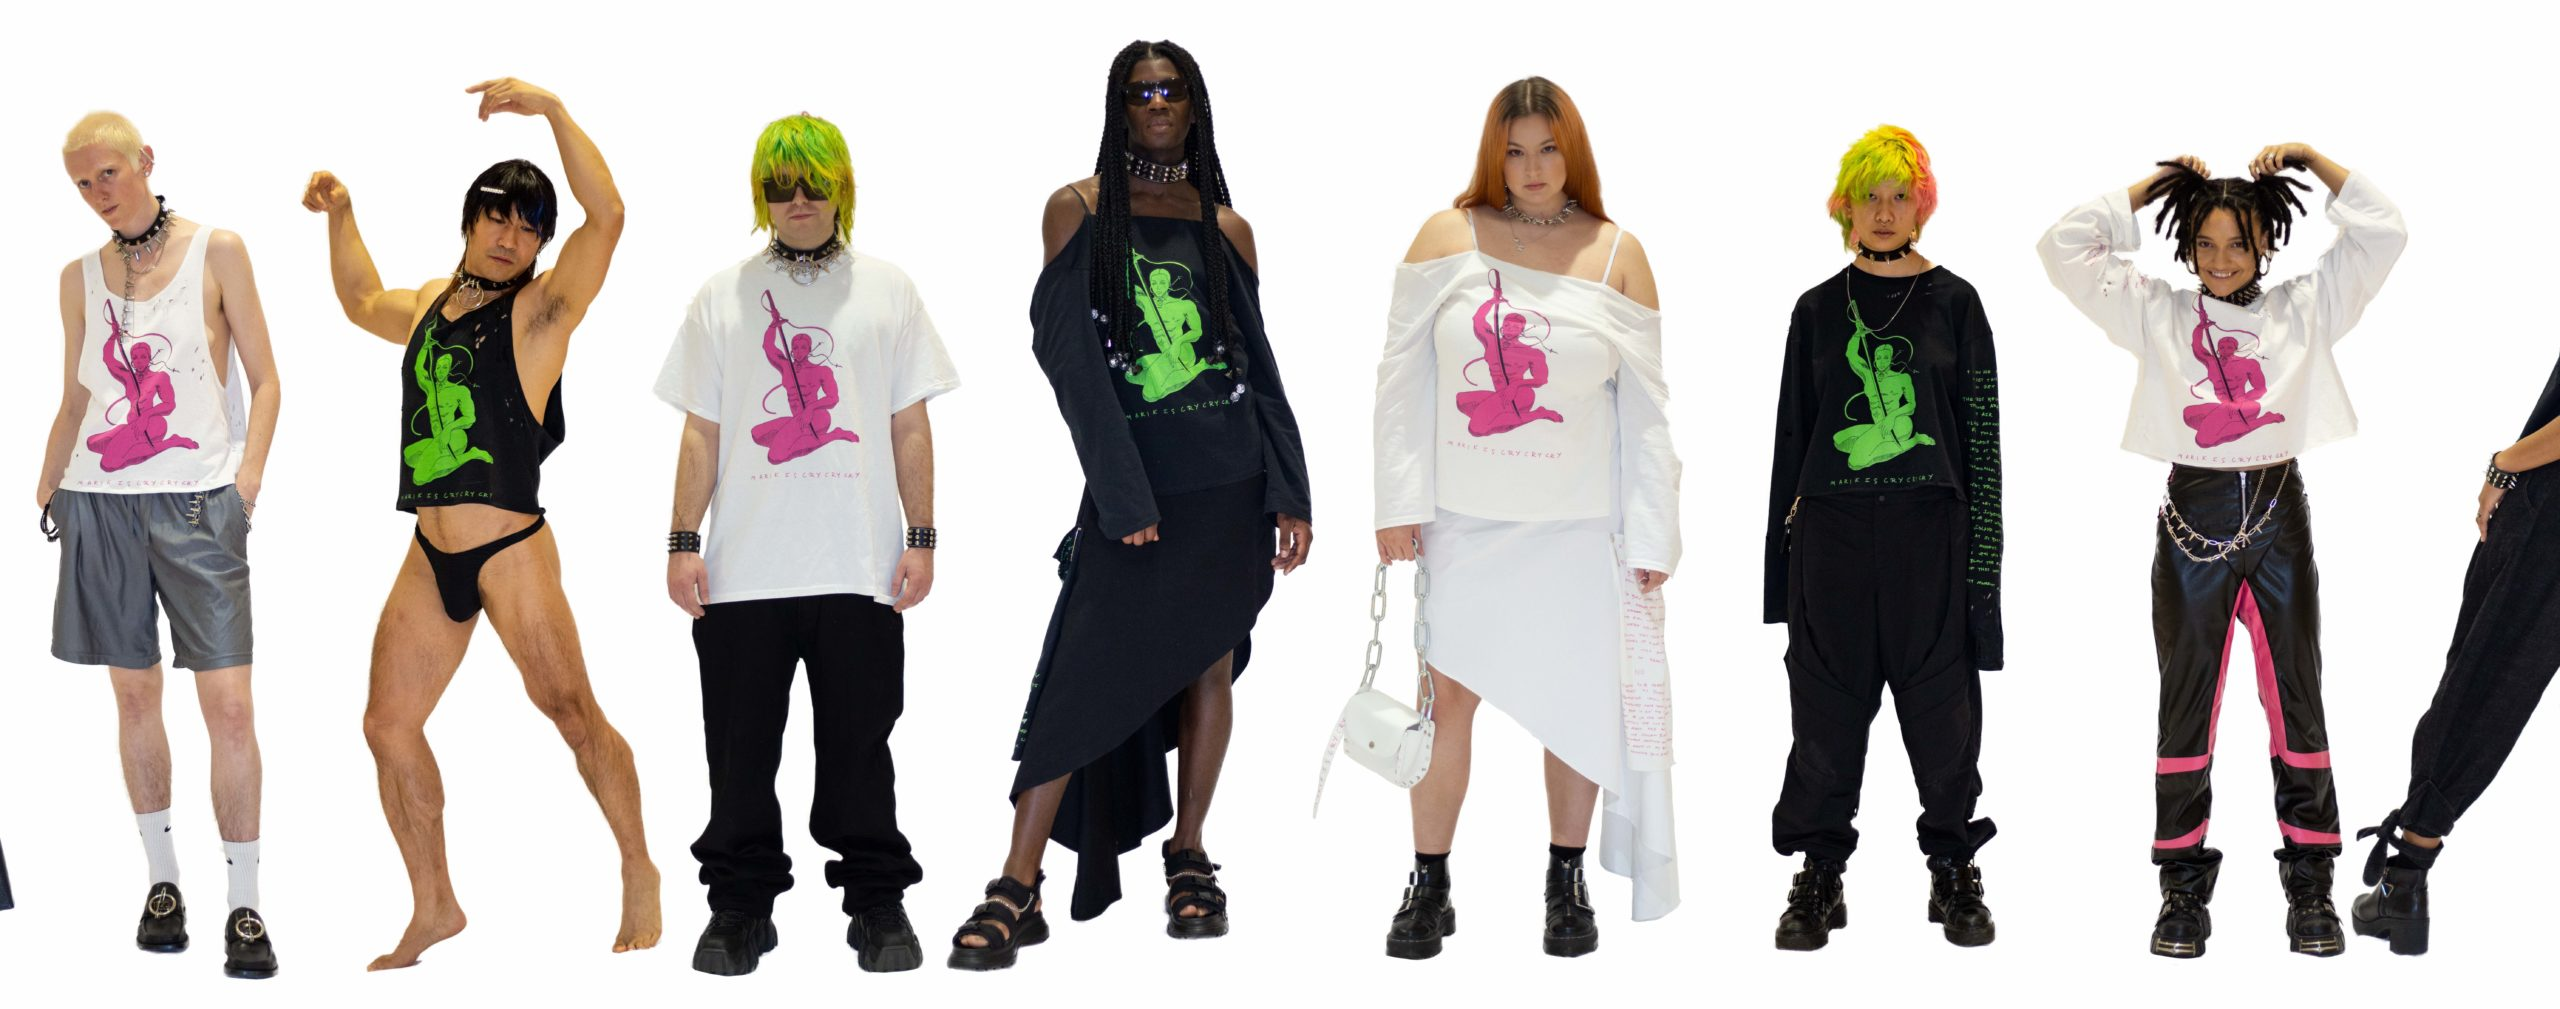 'I'm expanding beyond those attempts to box us', Marikiscrycrycry is reimagining performance art through alt fashion